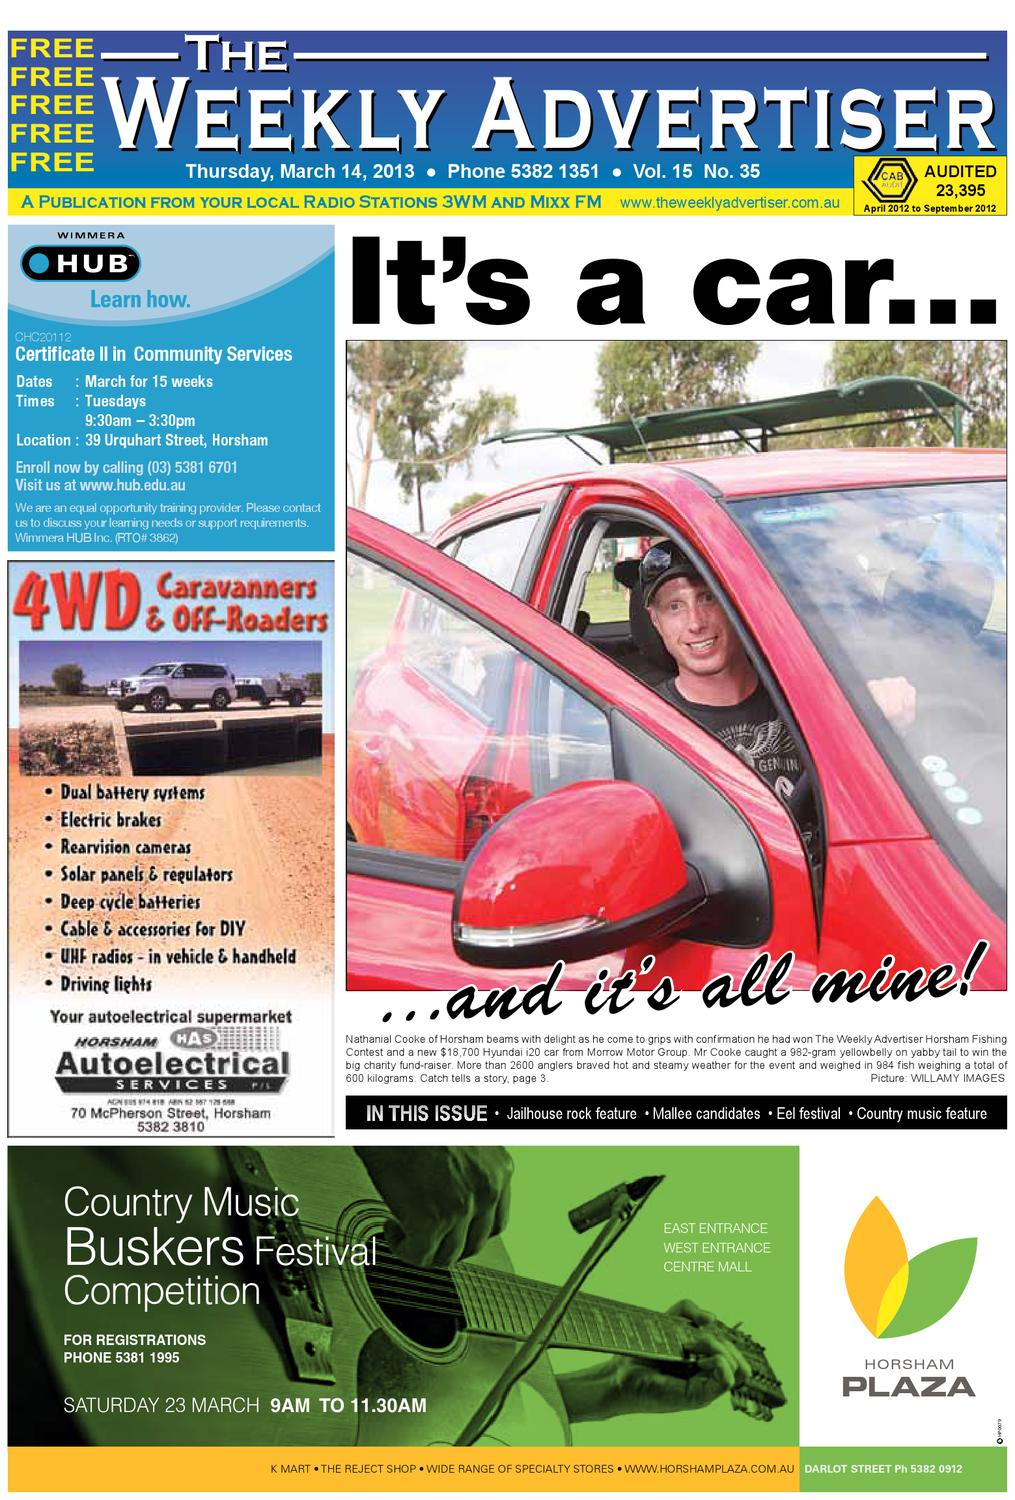 The Weekly Advertiser Thursday March 14 2013 Edition By Fog Lights On Wiring Up Driving Taurus Car Club Of America Issuu